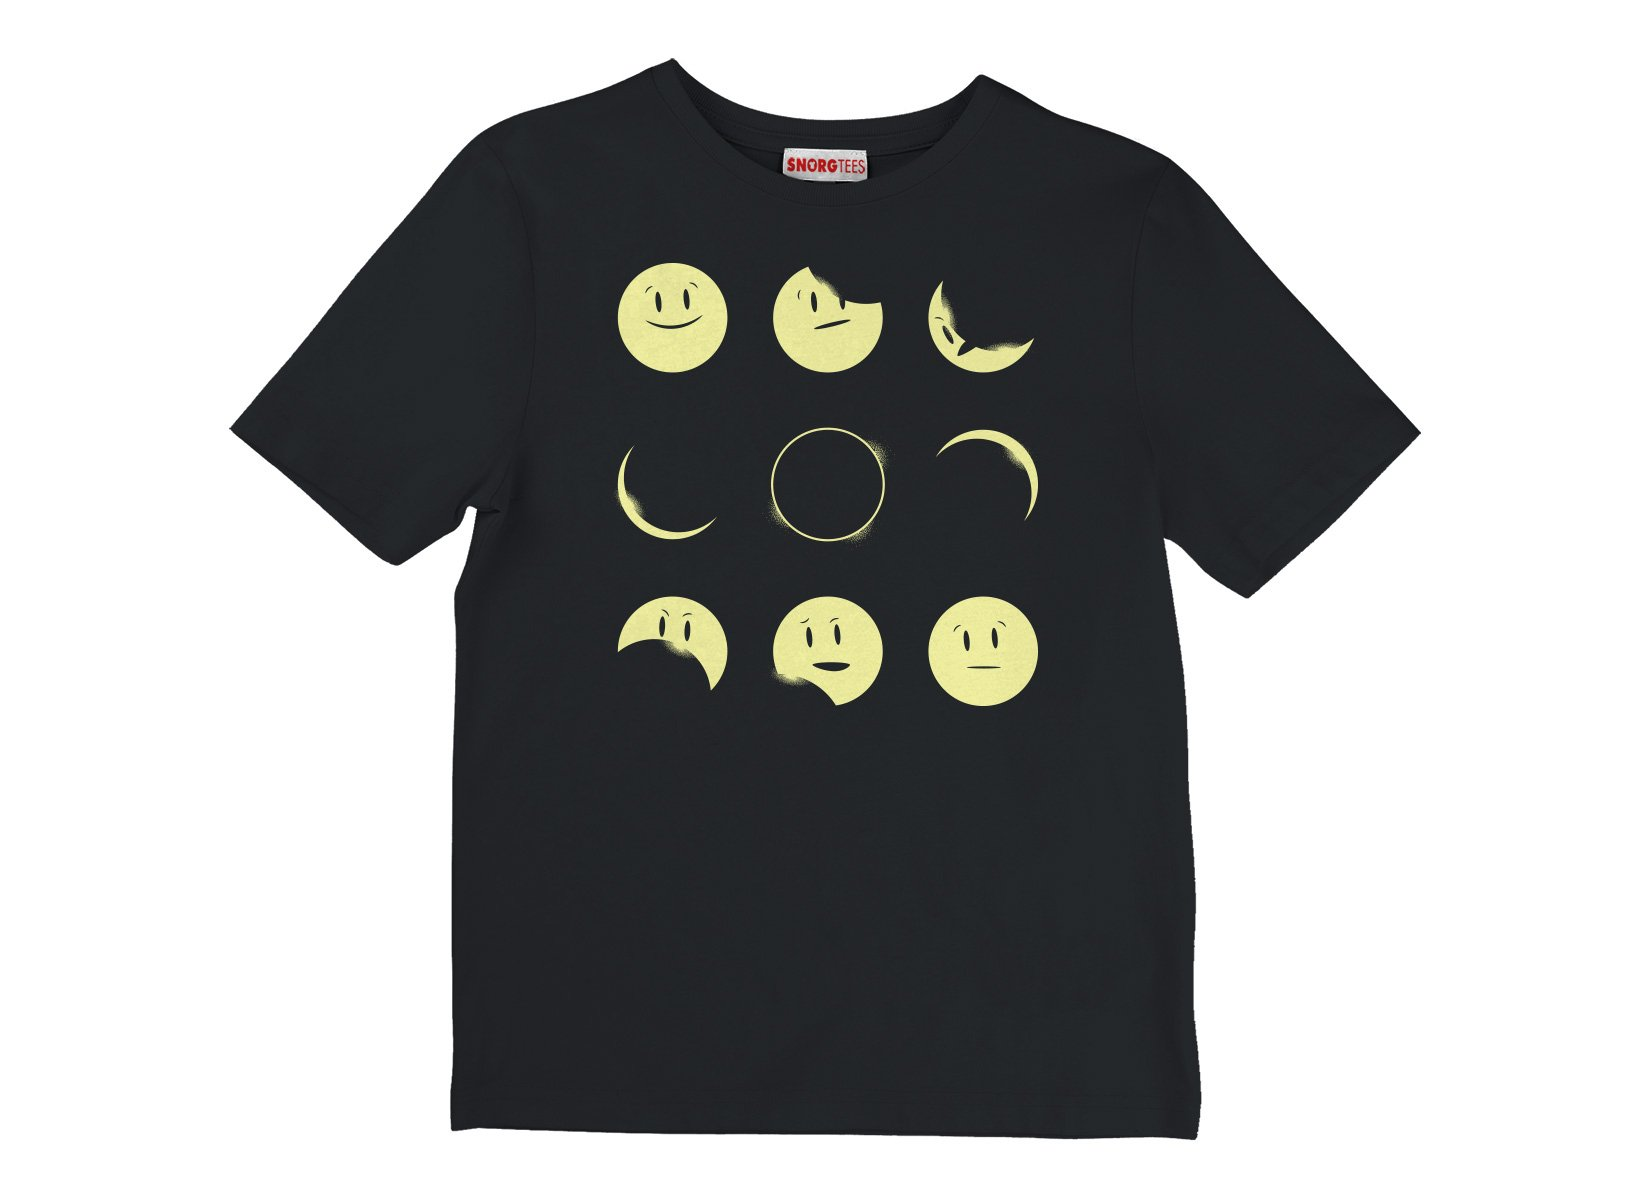 Eclipse Emoji on Kids T-Shirt